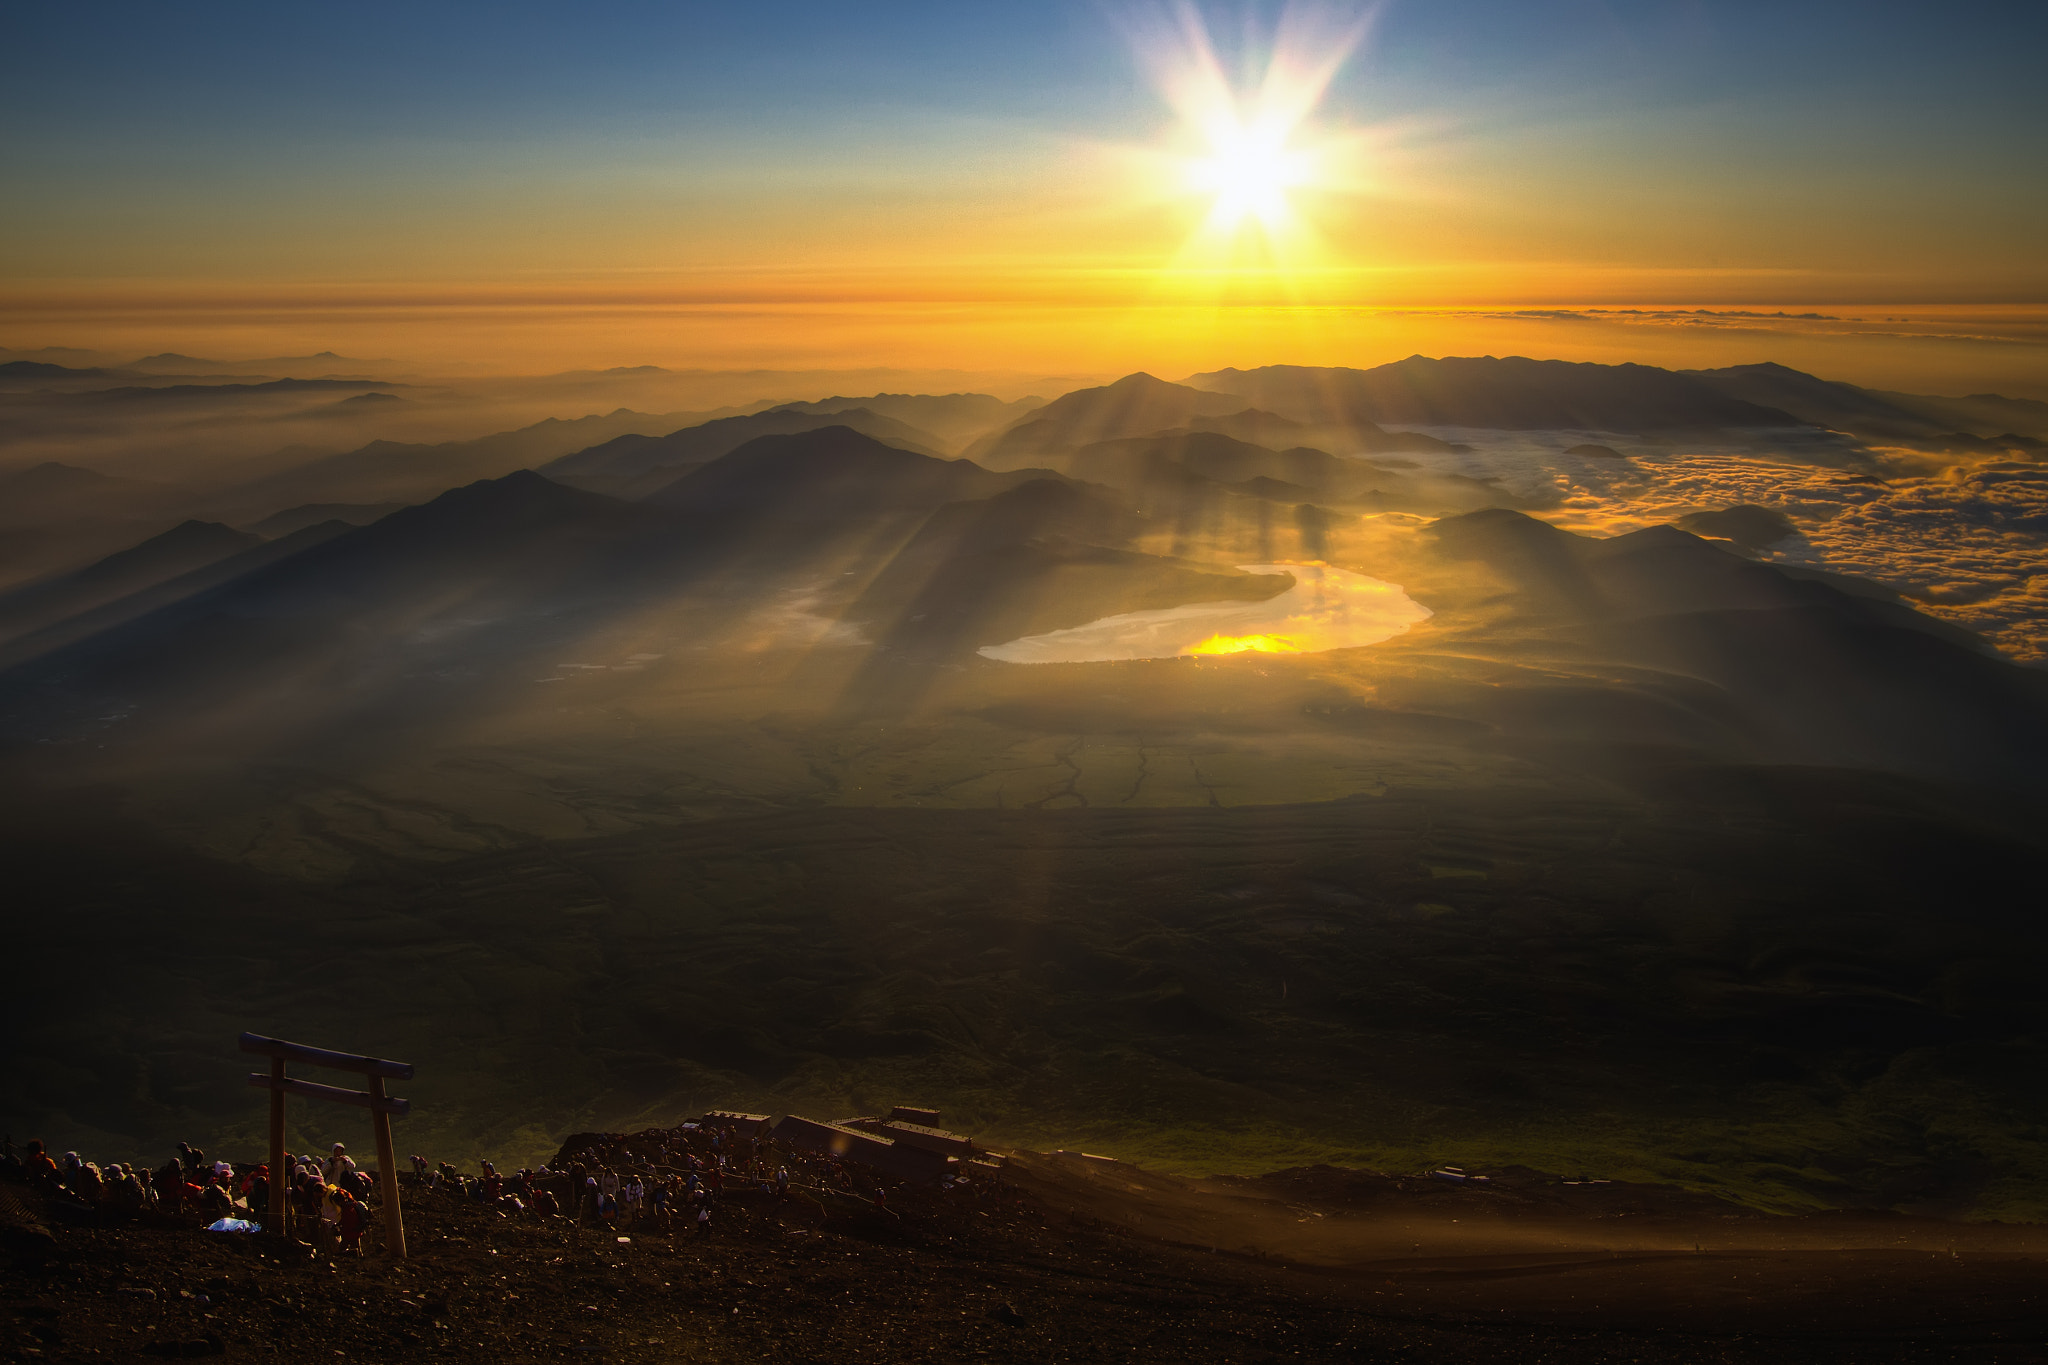 Photograph Eternal Sunrise From Mt. Fuji by Agustin Rafael Reyes on 500px